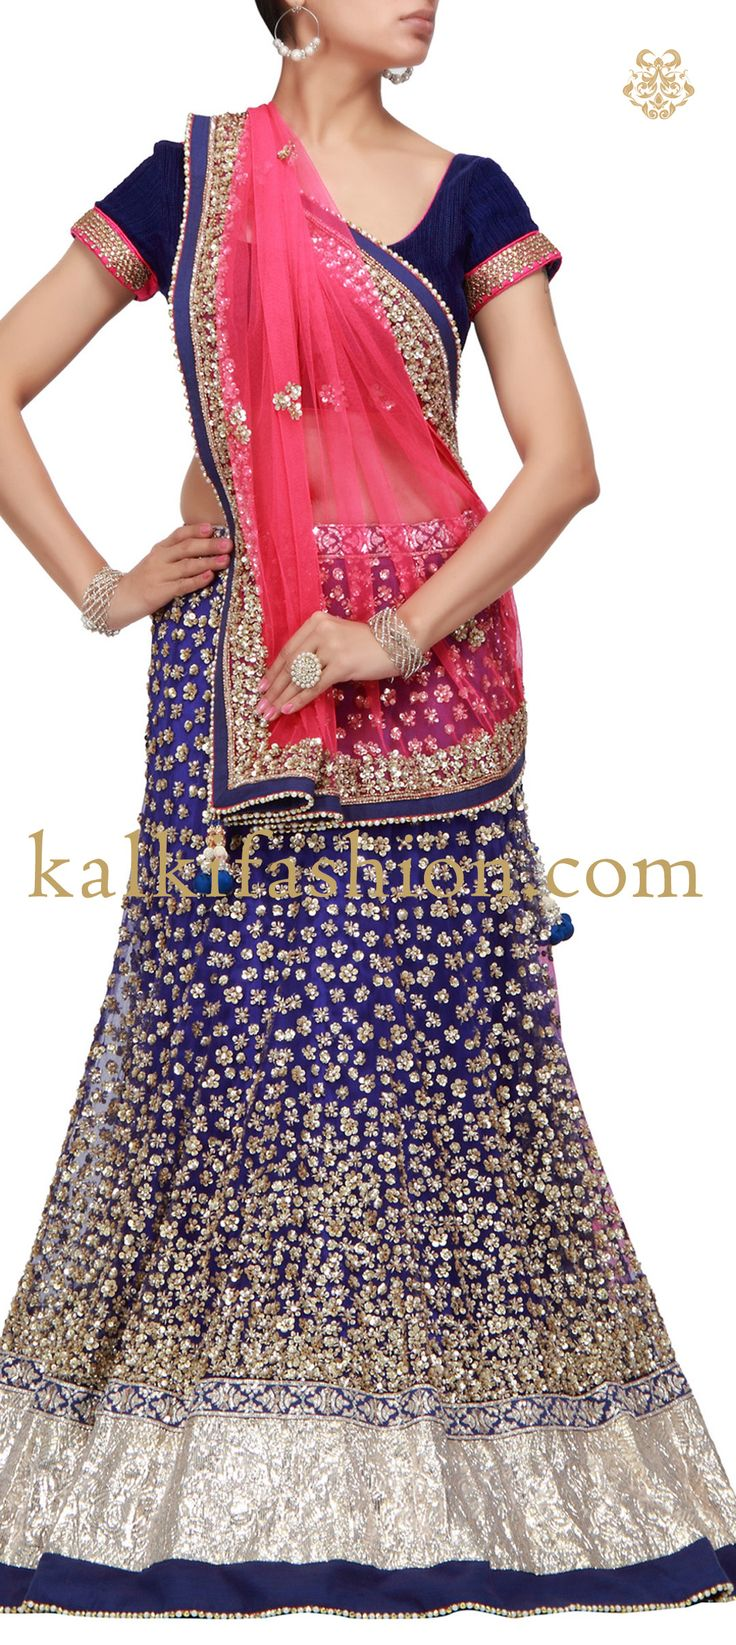 Buy it now http://www.kalkifashion.com/blue-lehenga-embroidered-in-gold-sequence-work-hand-made.html Blue lehenga embroidered in gold sequence work-Hand Made